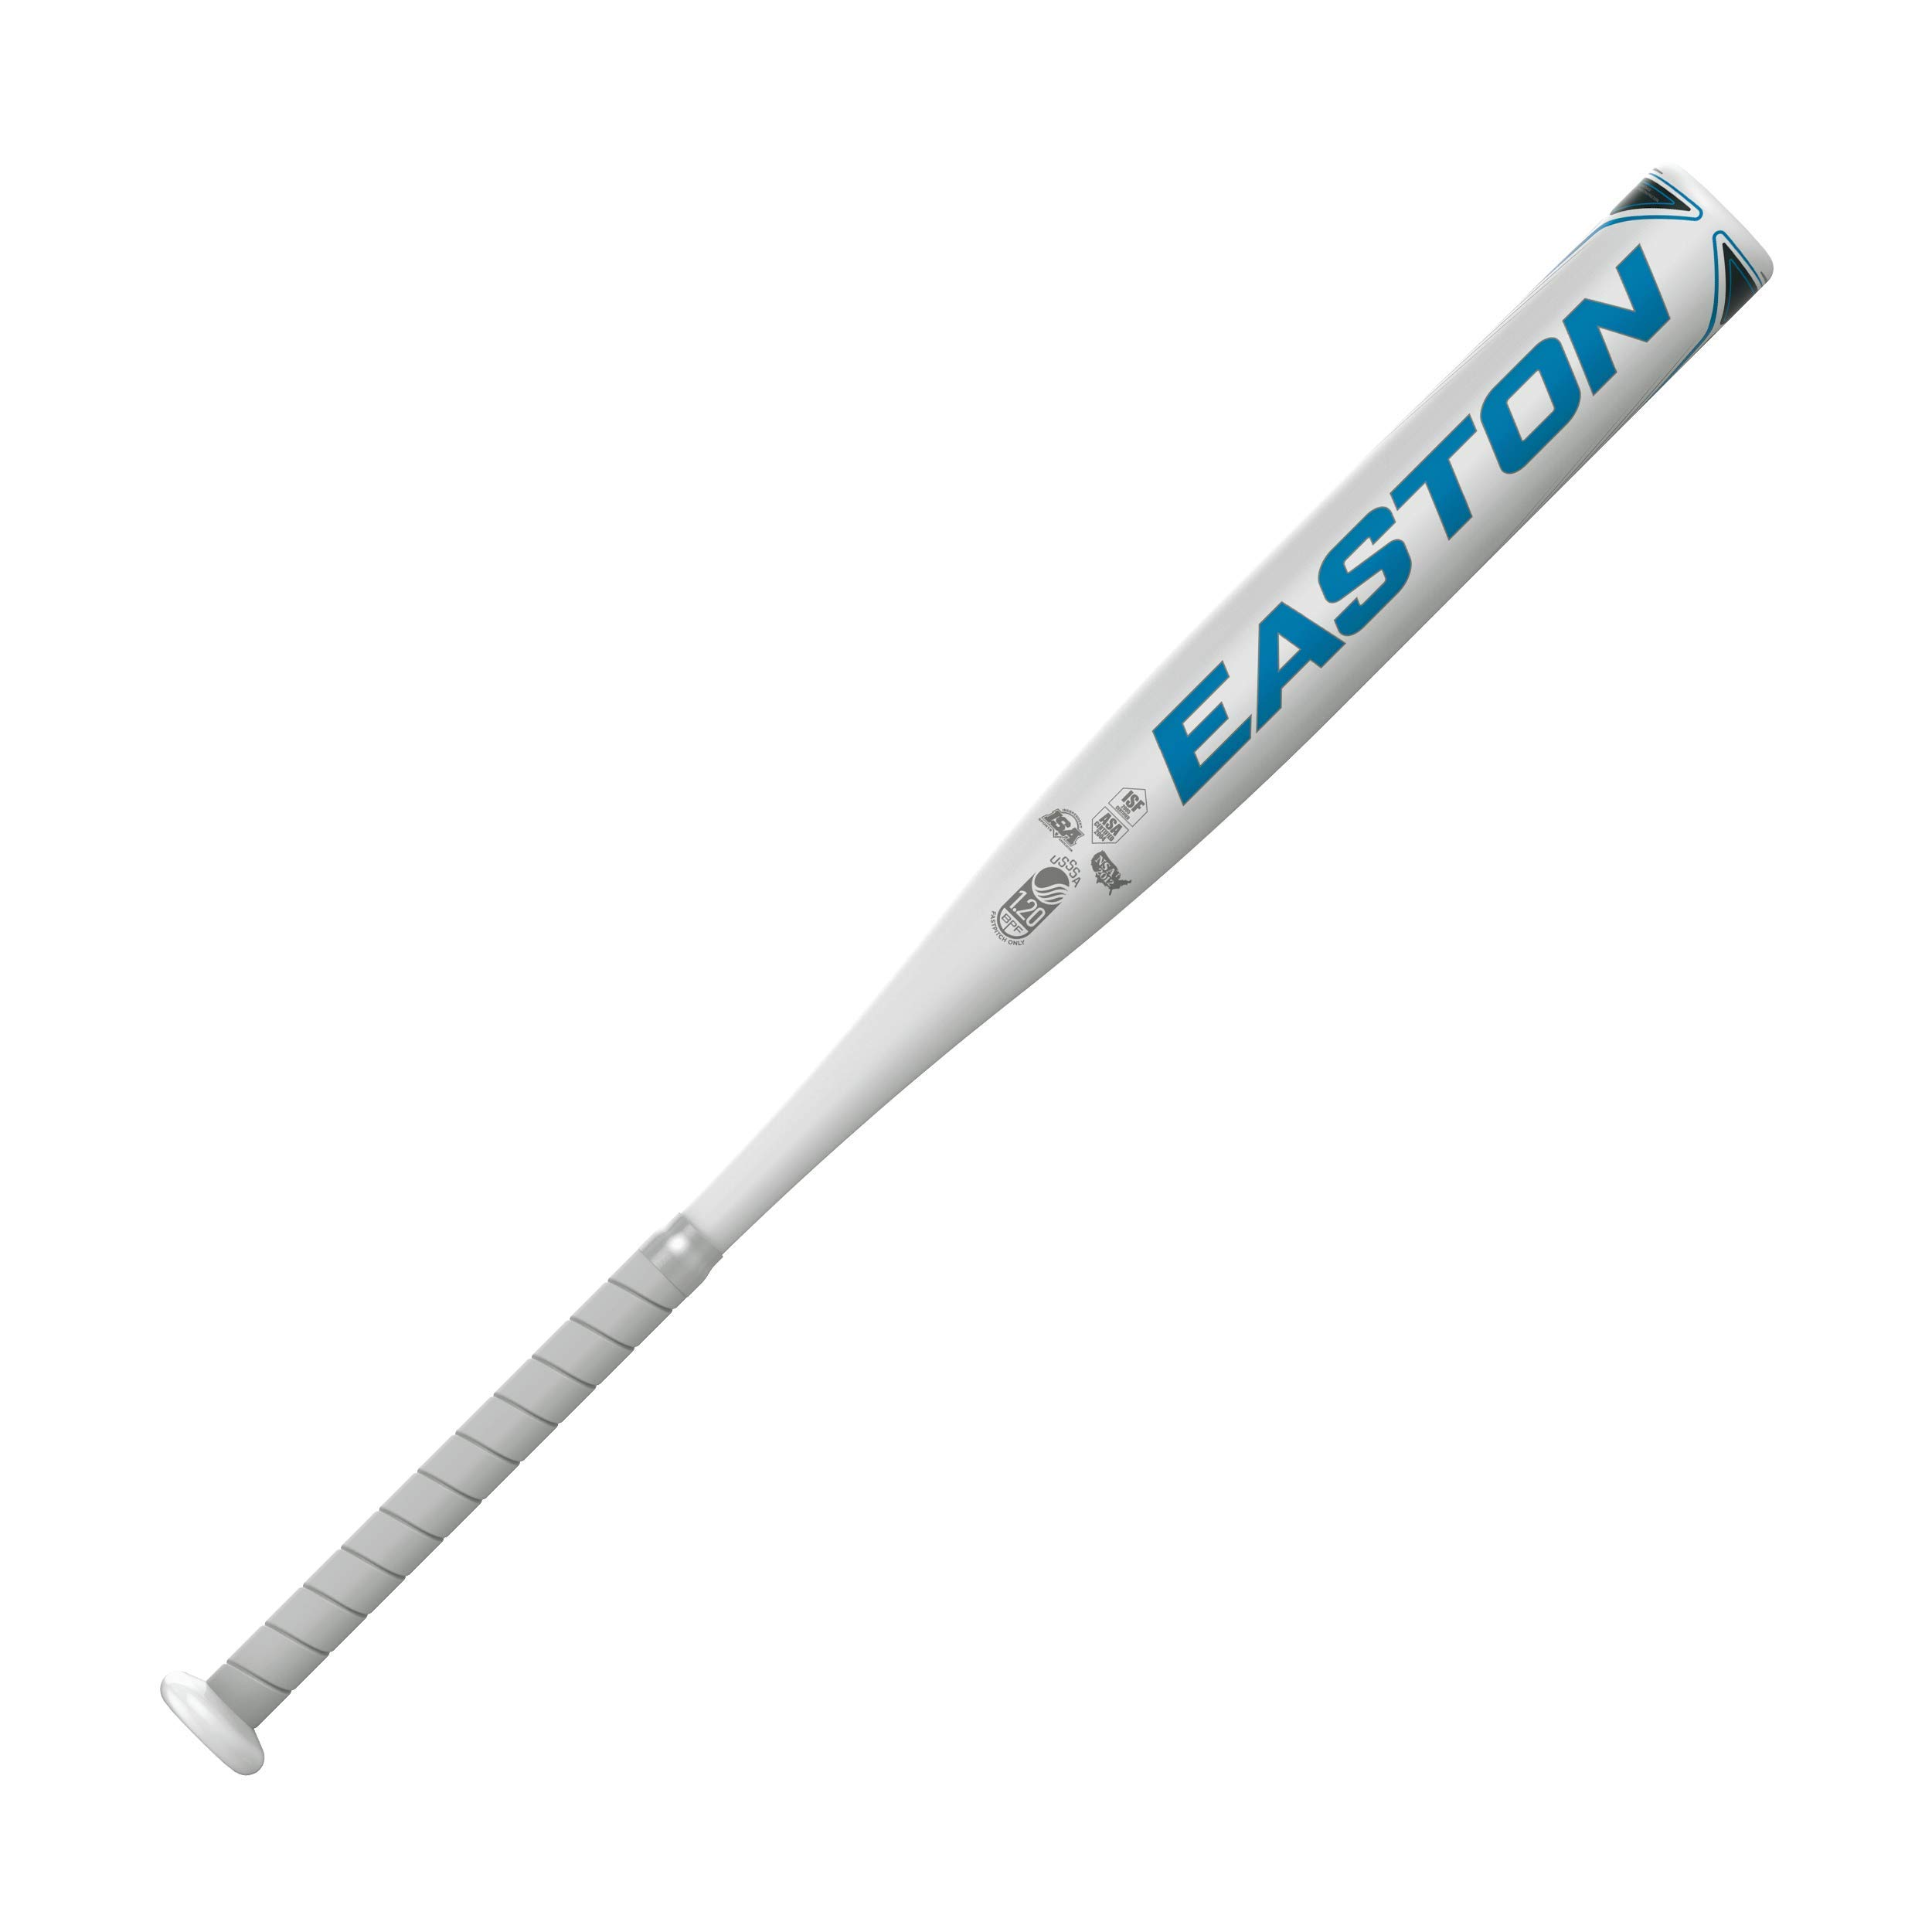 EASTON GHOST -11 Girls / Youth Fastpitch Softball Bat | 30 in / 19 oz | 2020 | 1 Piece Aluminum | ALX50 Military Grade Aluminum | Ultra Thin Handle | Comfort Grip | Approved All Fields by Easton